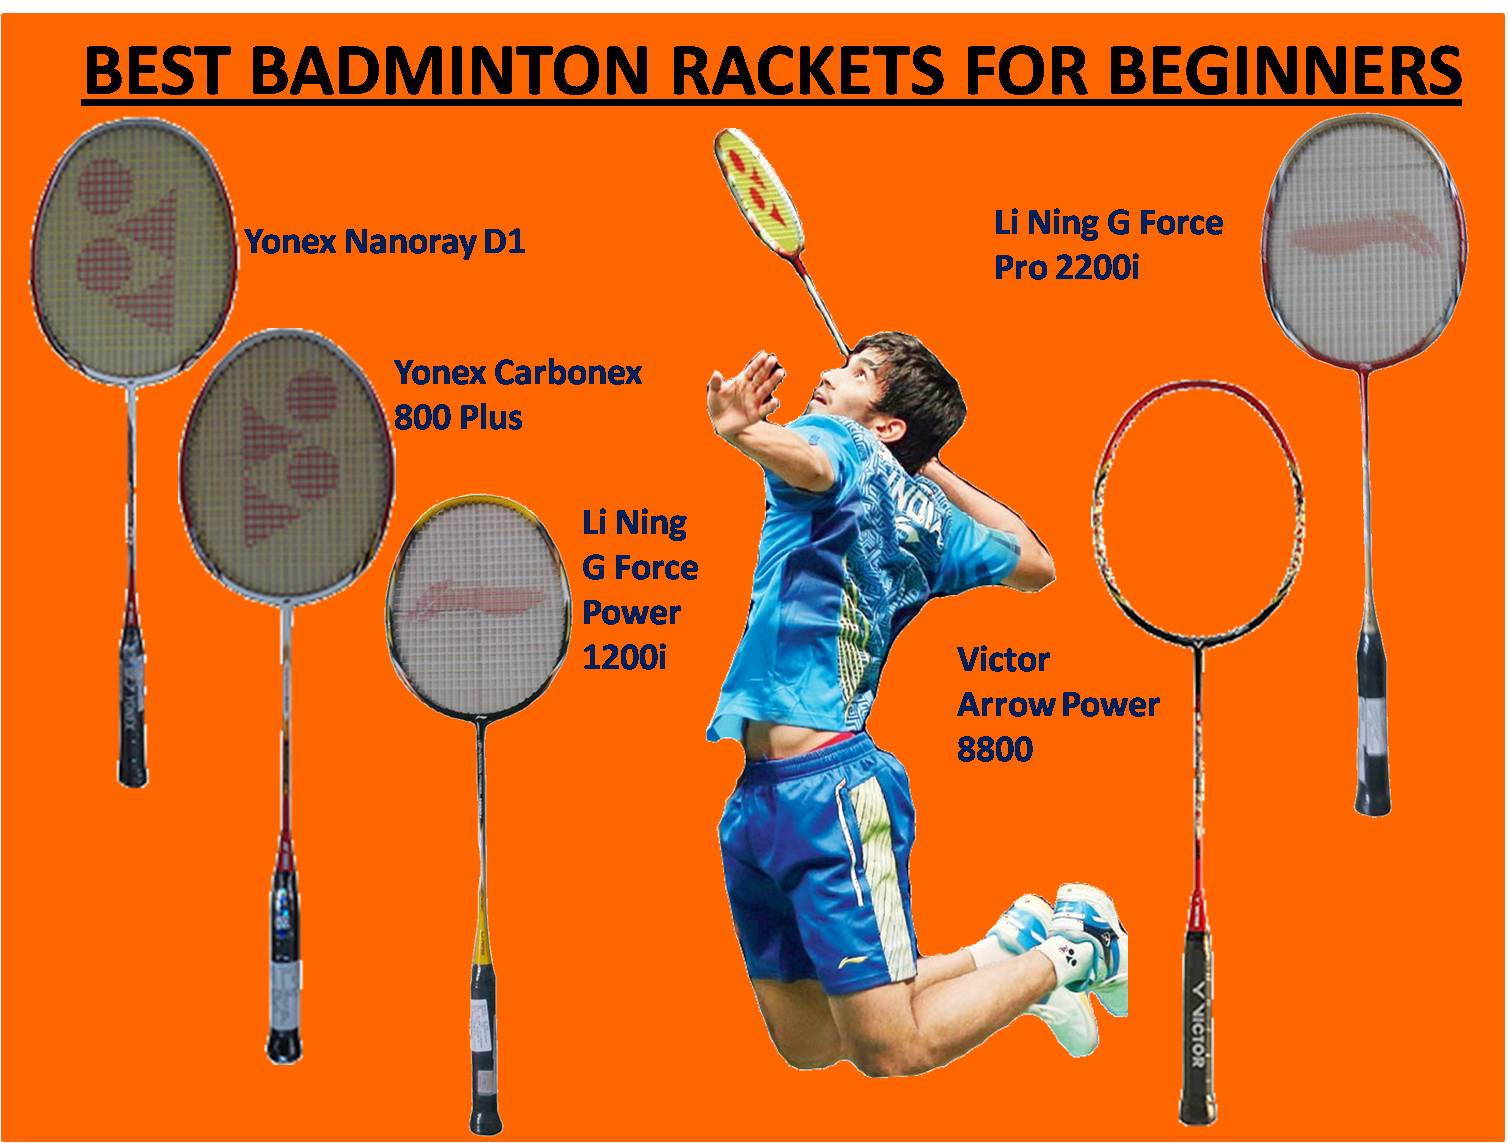 BEST BADMINTON RACKET FOR BEGINNERS_1